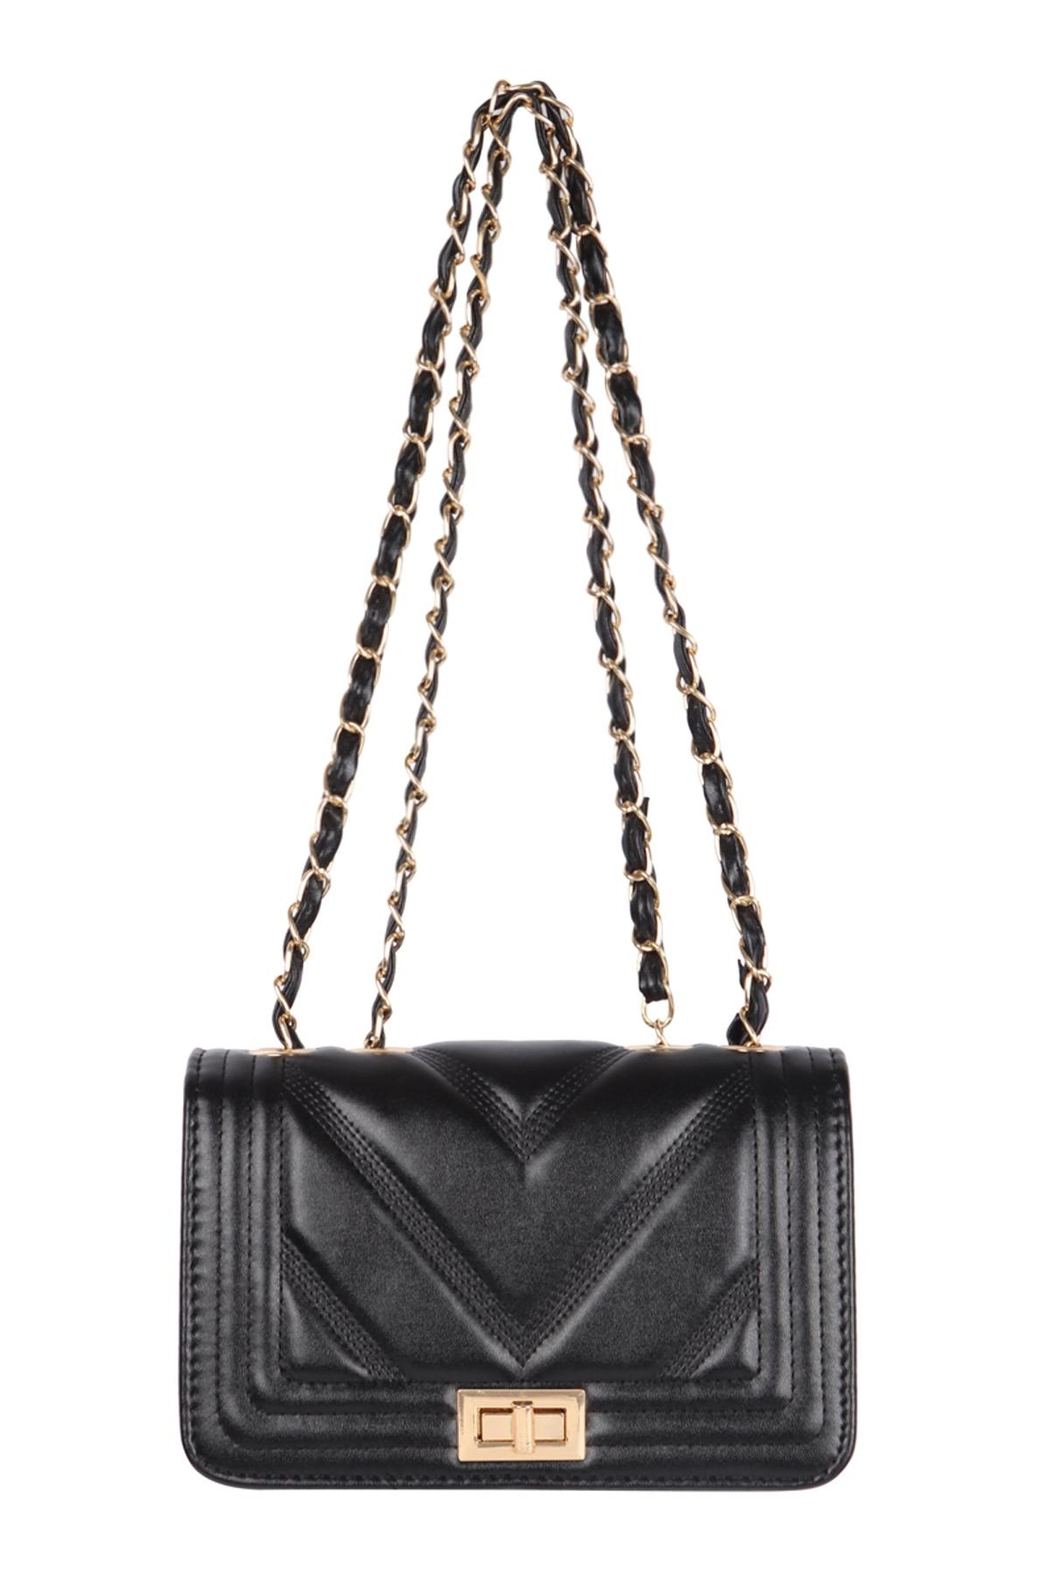 Riah Fashion Quilted-Designe-Leather-Fahion-Bag-Cross-Body-Bag - Front Cropped Image